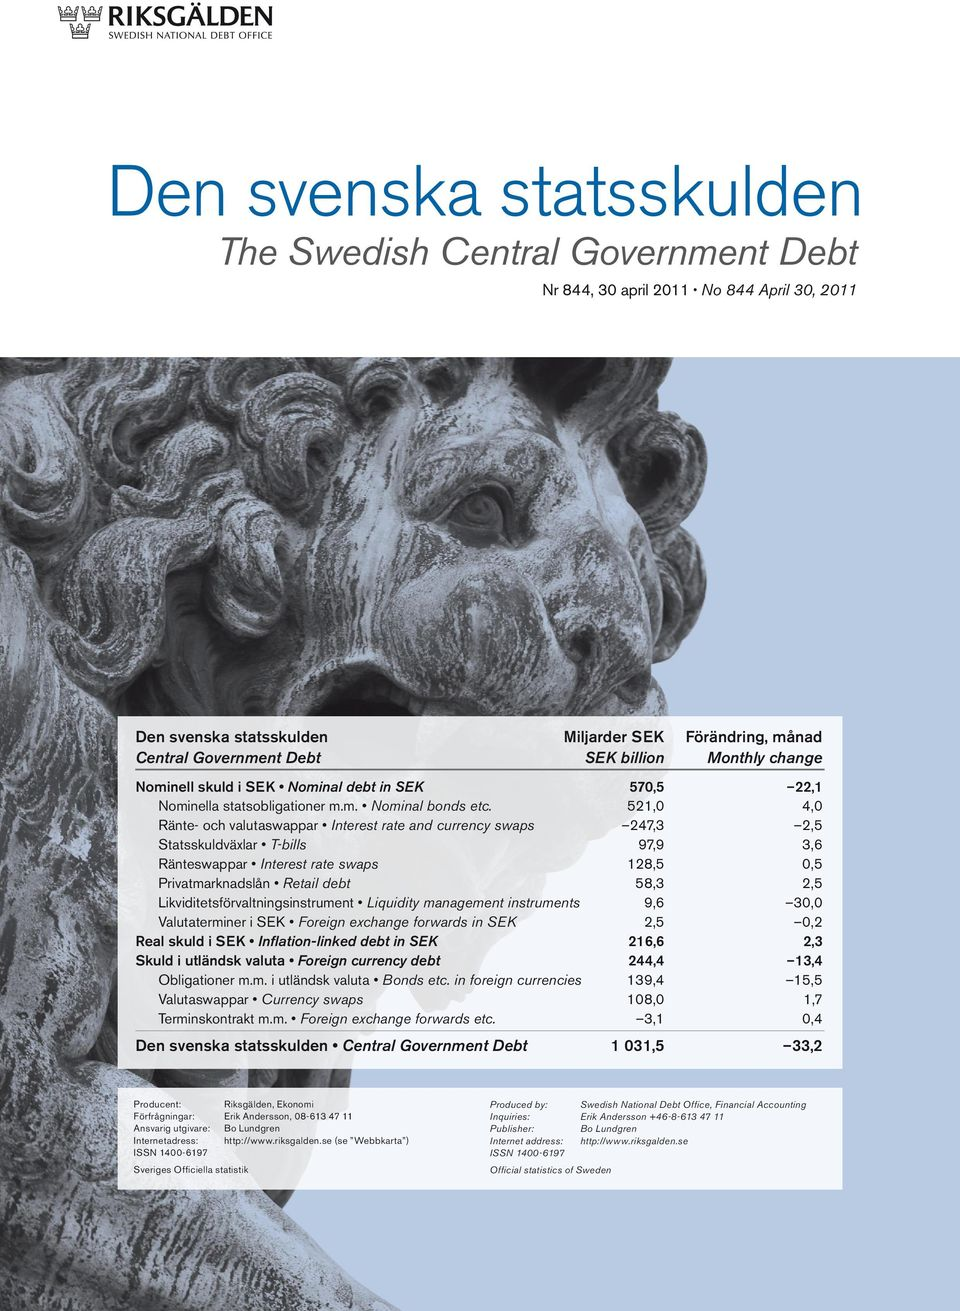 Ränte- och valutaswappar Interest rate and currency swaps Statsskuldväxlar T-bills Ränteswappar Interest rate swaps Privatmarknadslån Retail debt Likviditetsförvaltningsinstrument Liquidity